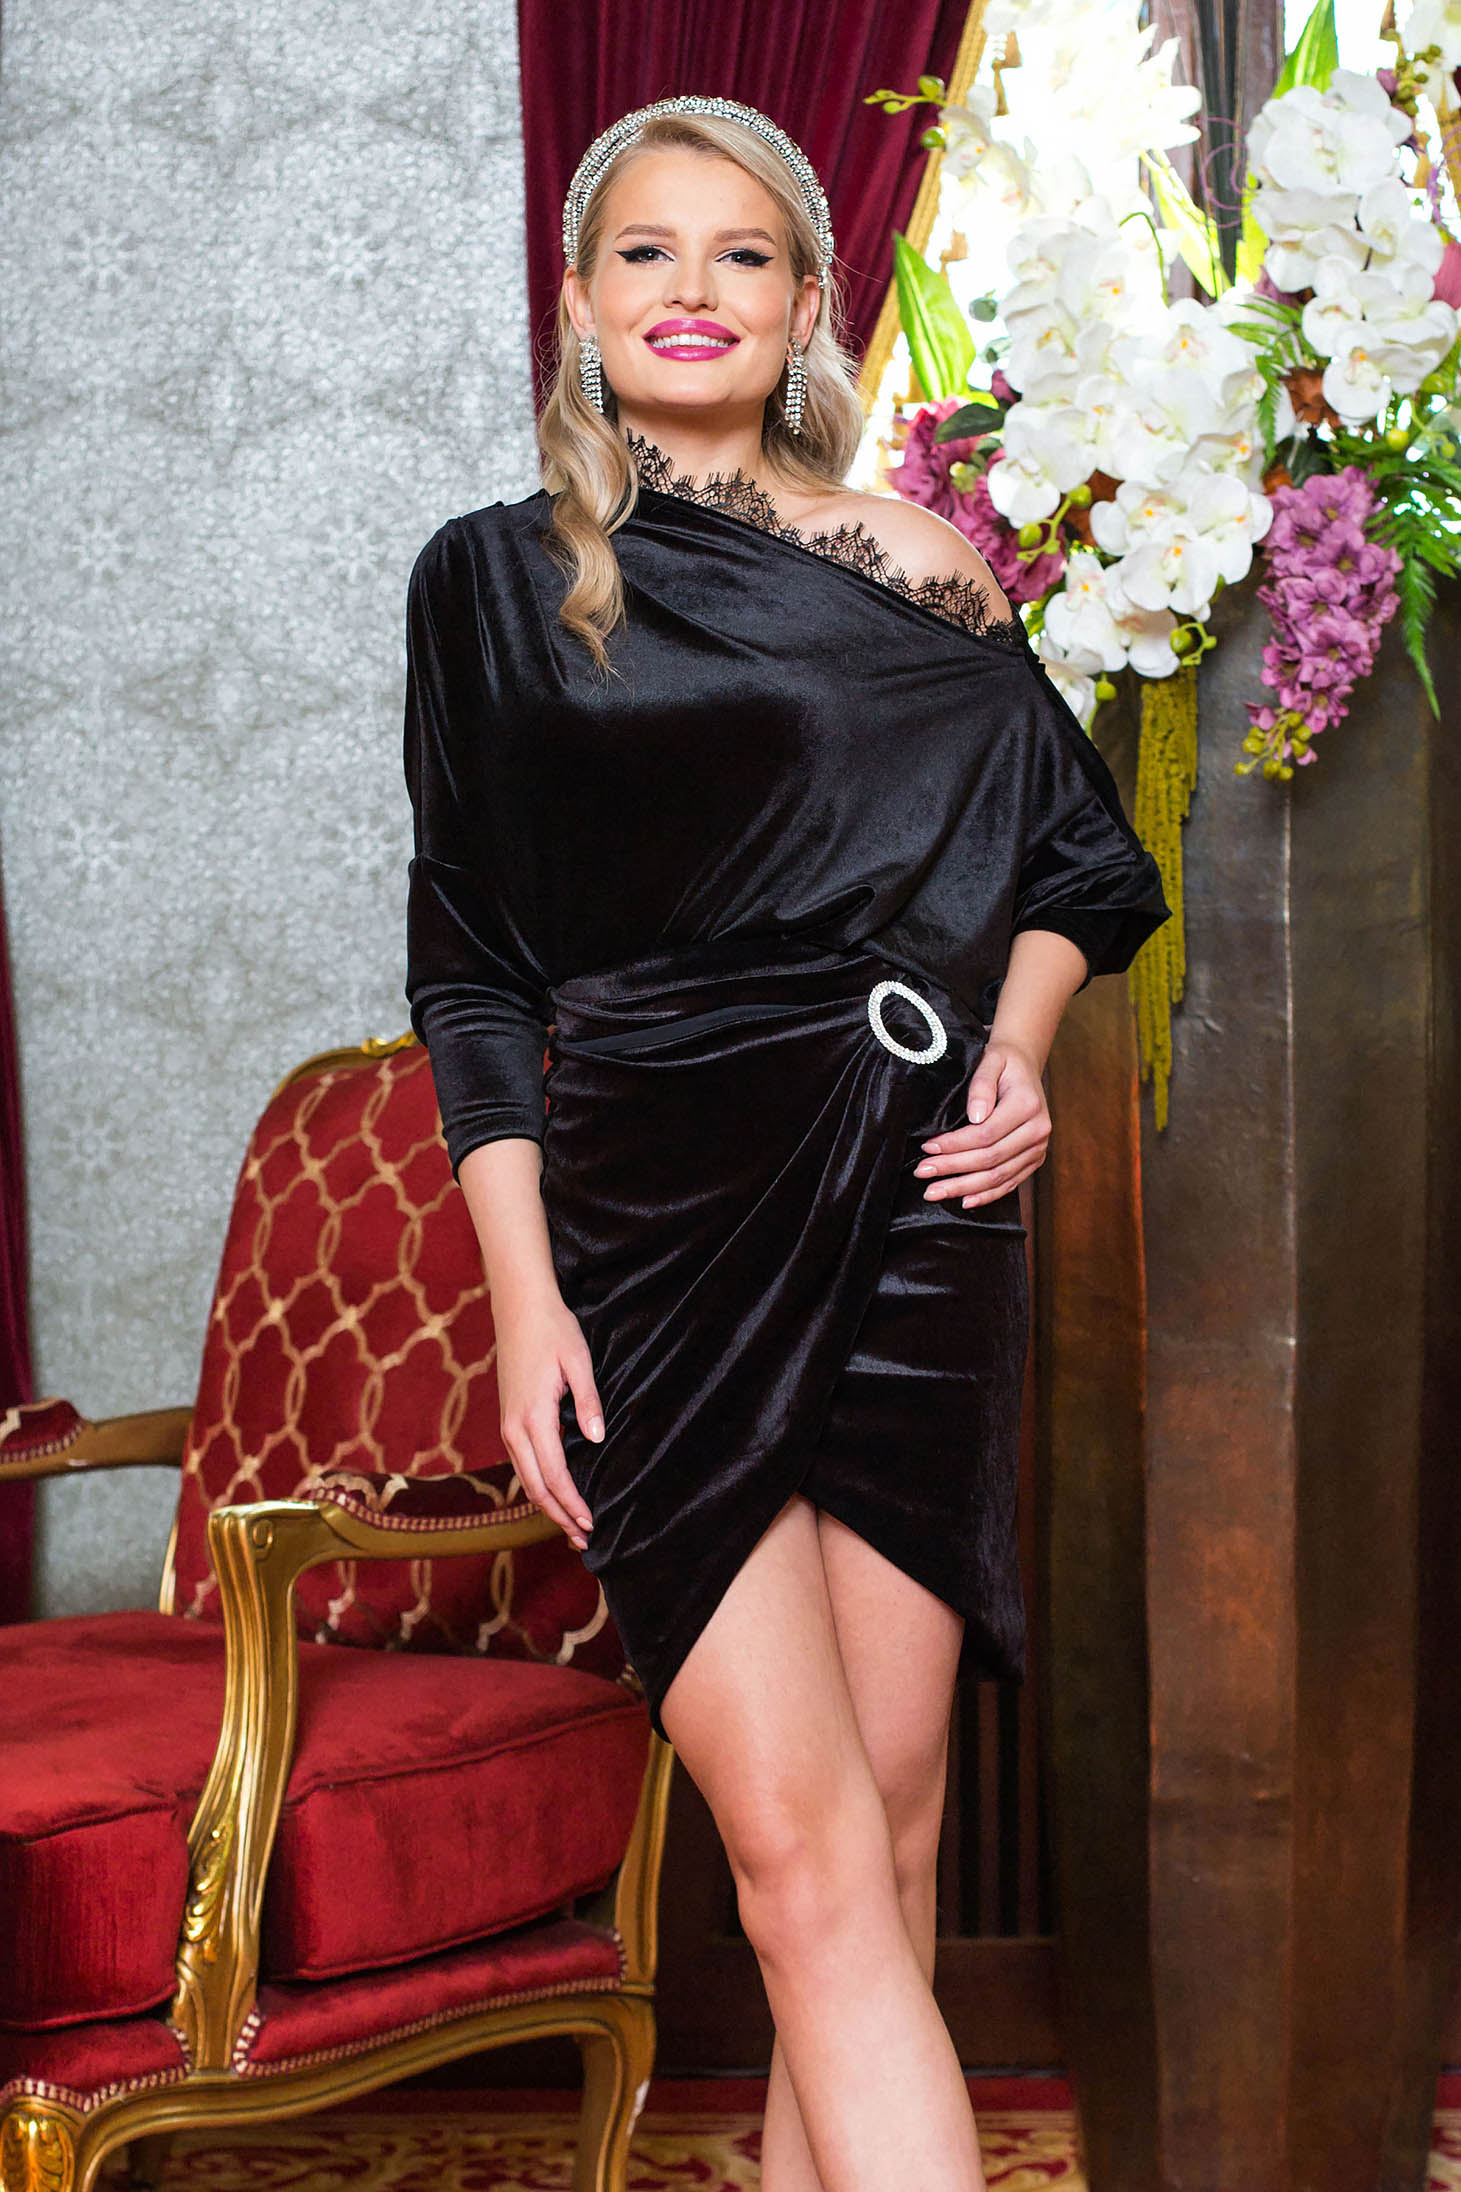 Black women`s blouse occasional from velvet with lace details